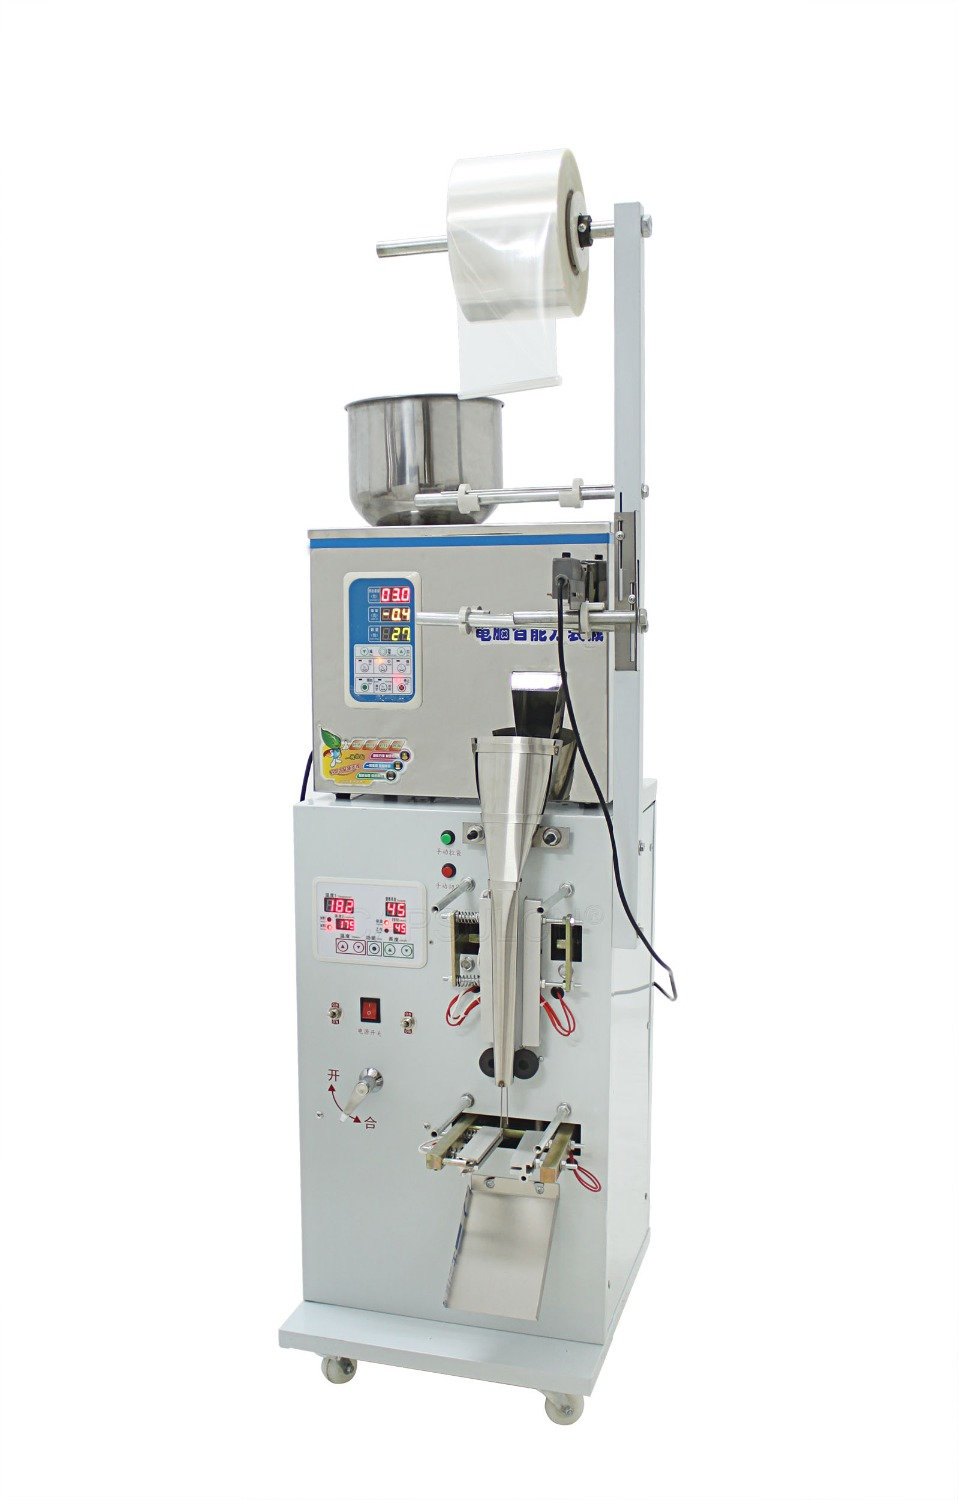 CapsulCN, 2-100g Full Automatic Foil Pouch Weight And Filling Packaging Machine,Herb/Powder/Food Packing Machine  цены